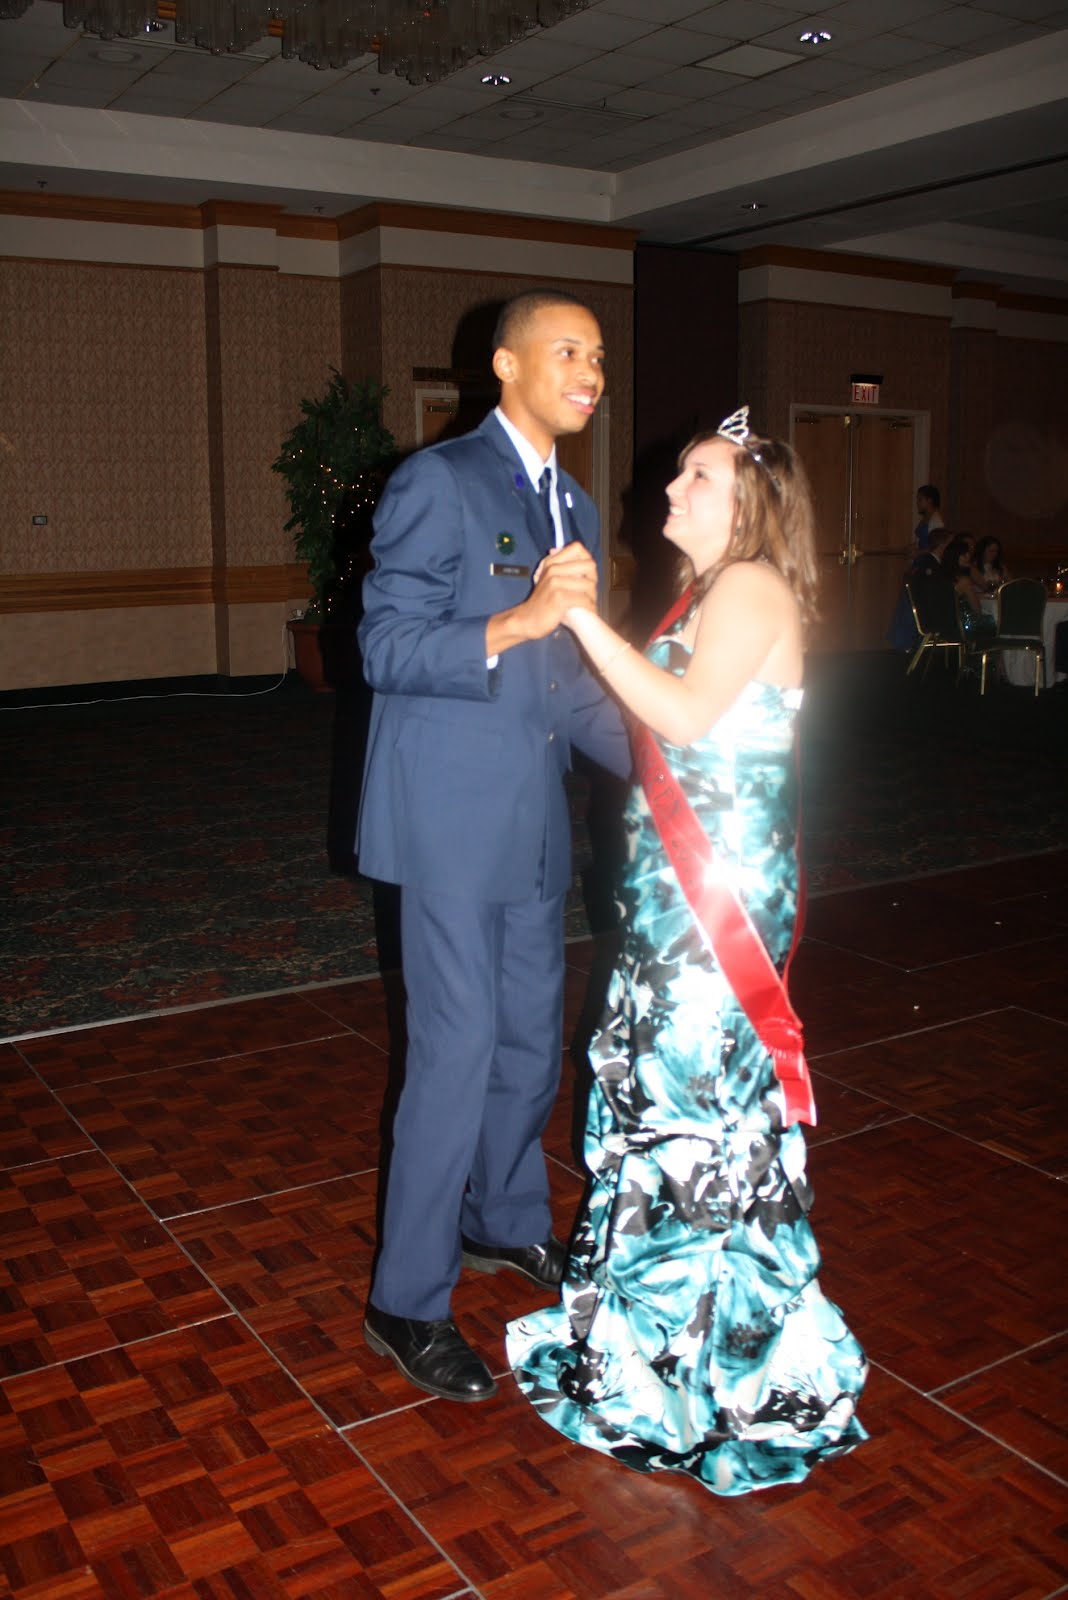 Air Force Junior ROTC South Carolina 954: A Military Ball To Remember!